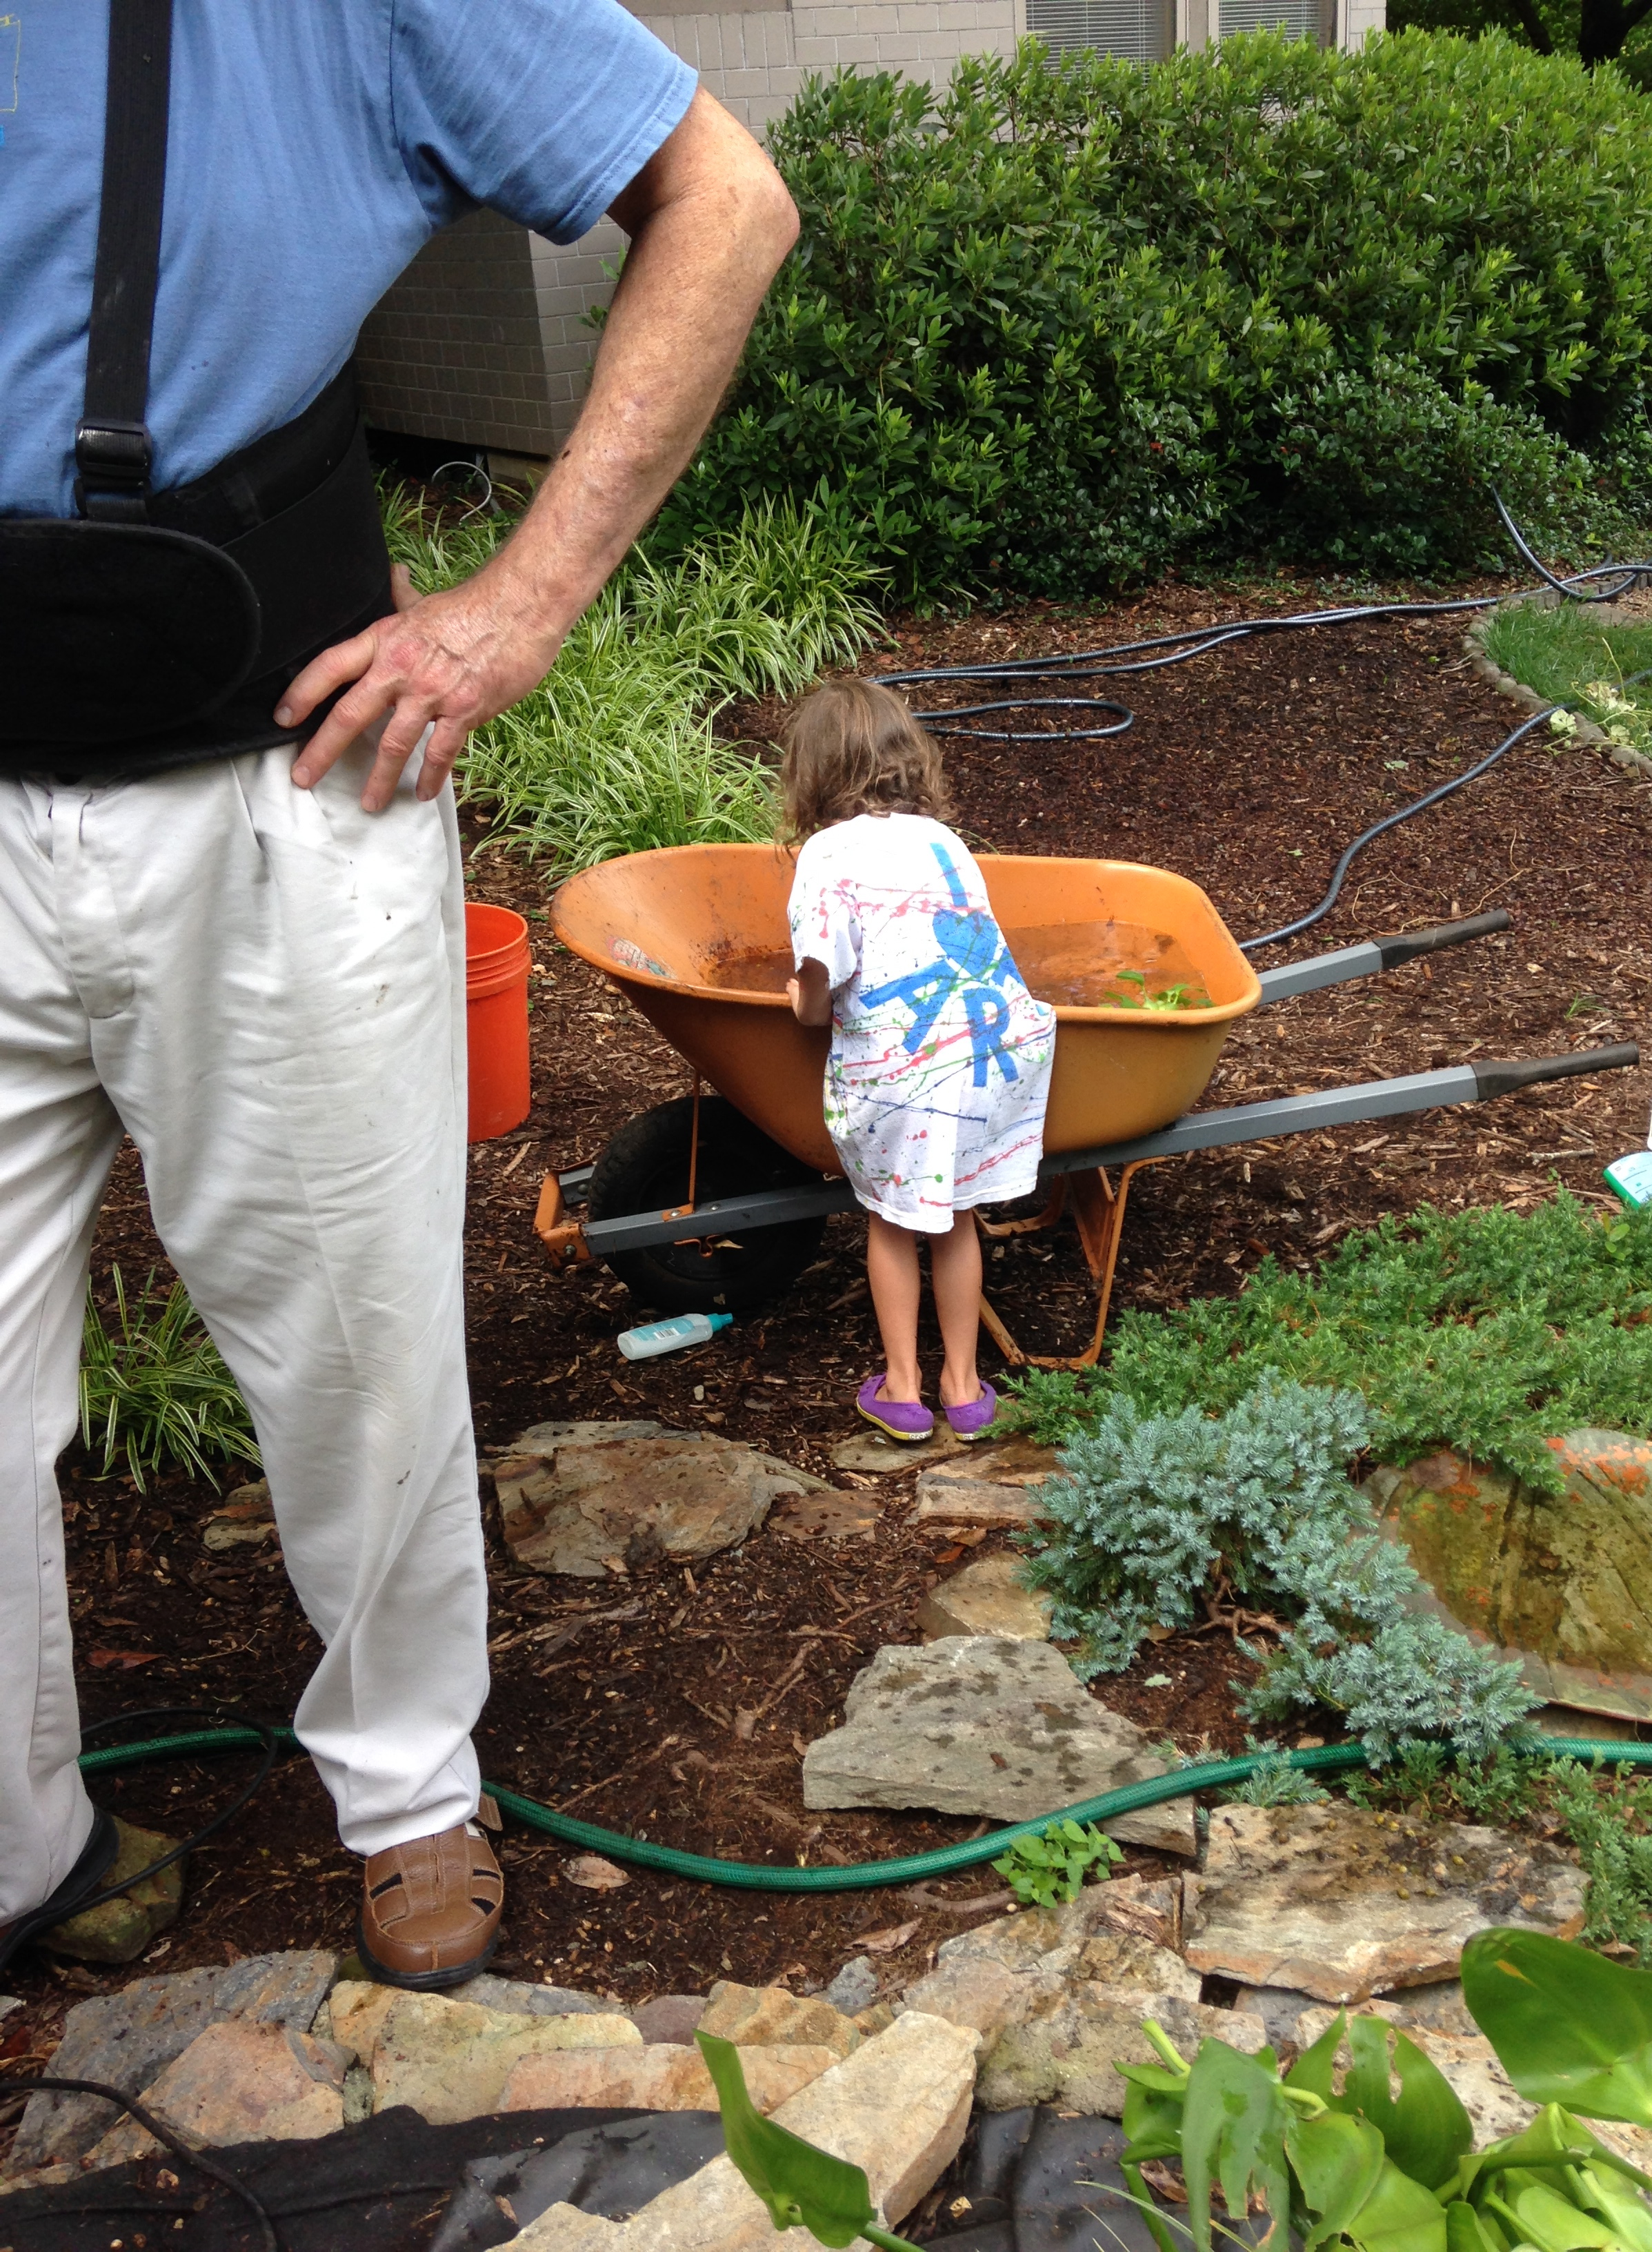 Tending to the goldfish while their pond gets cleaned...